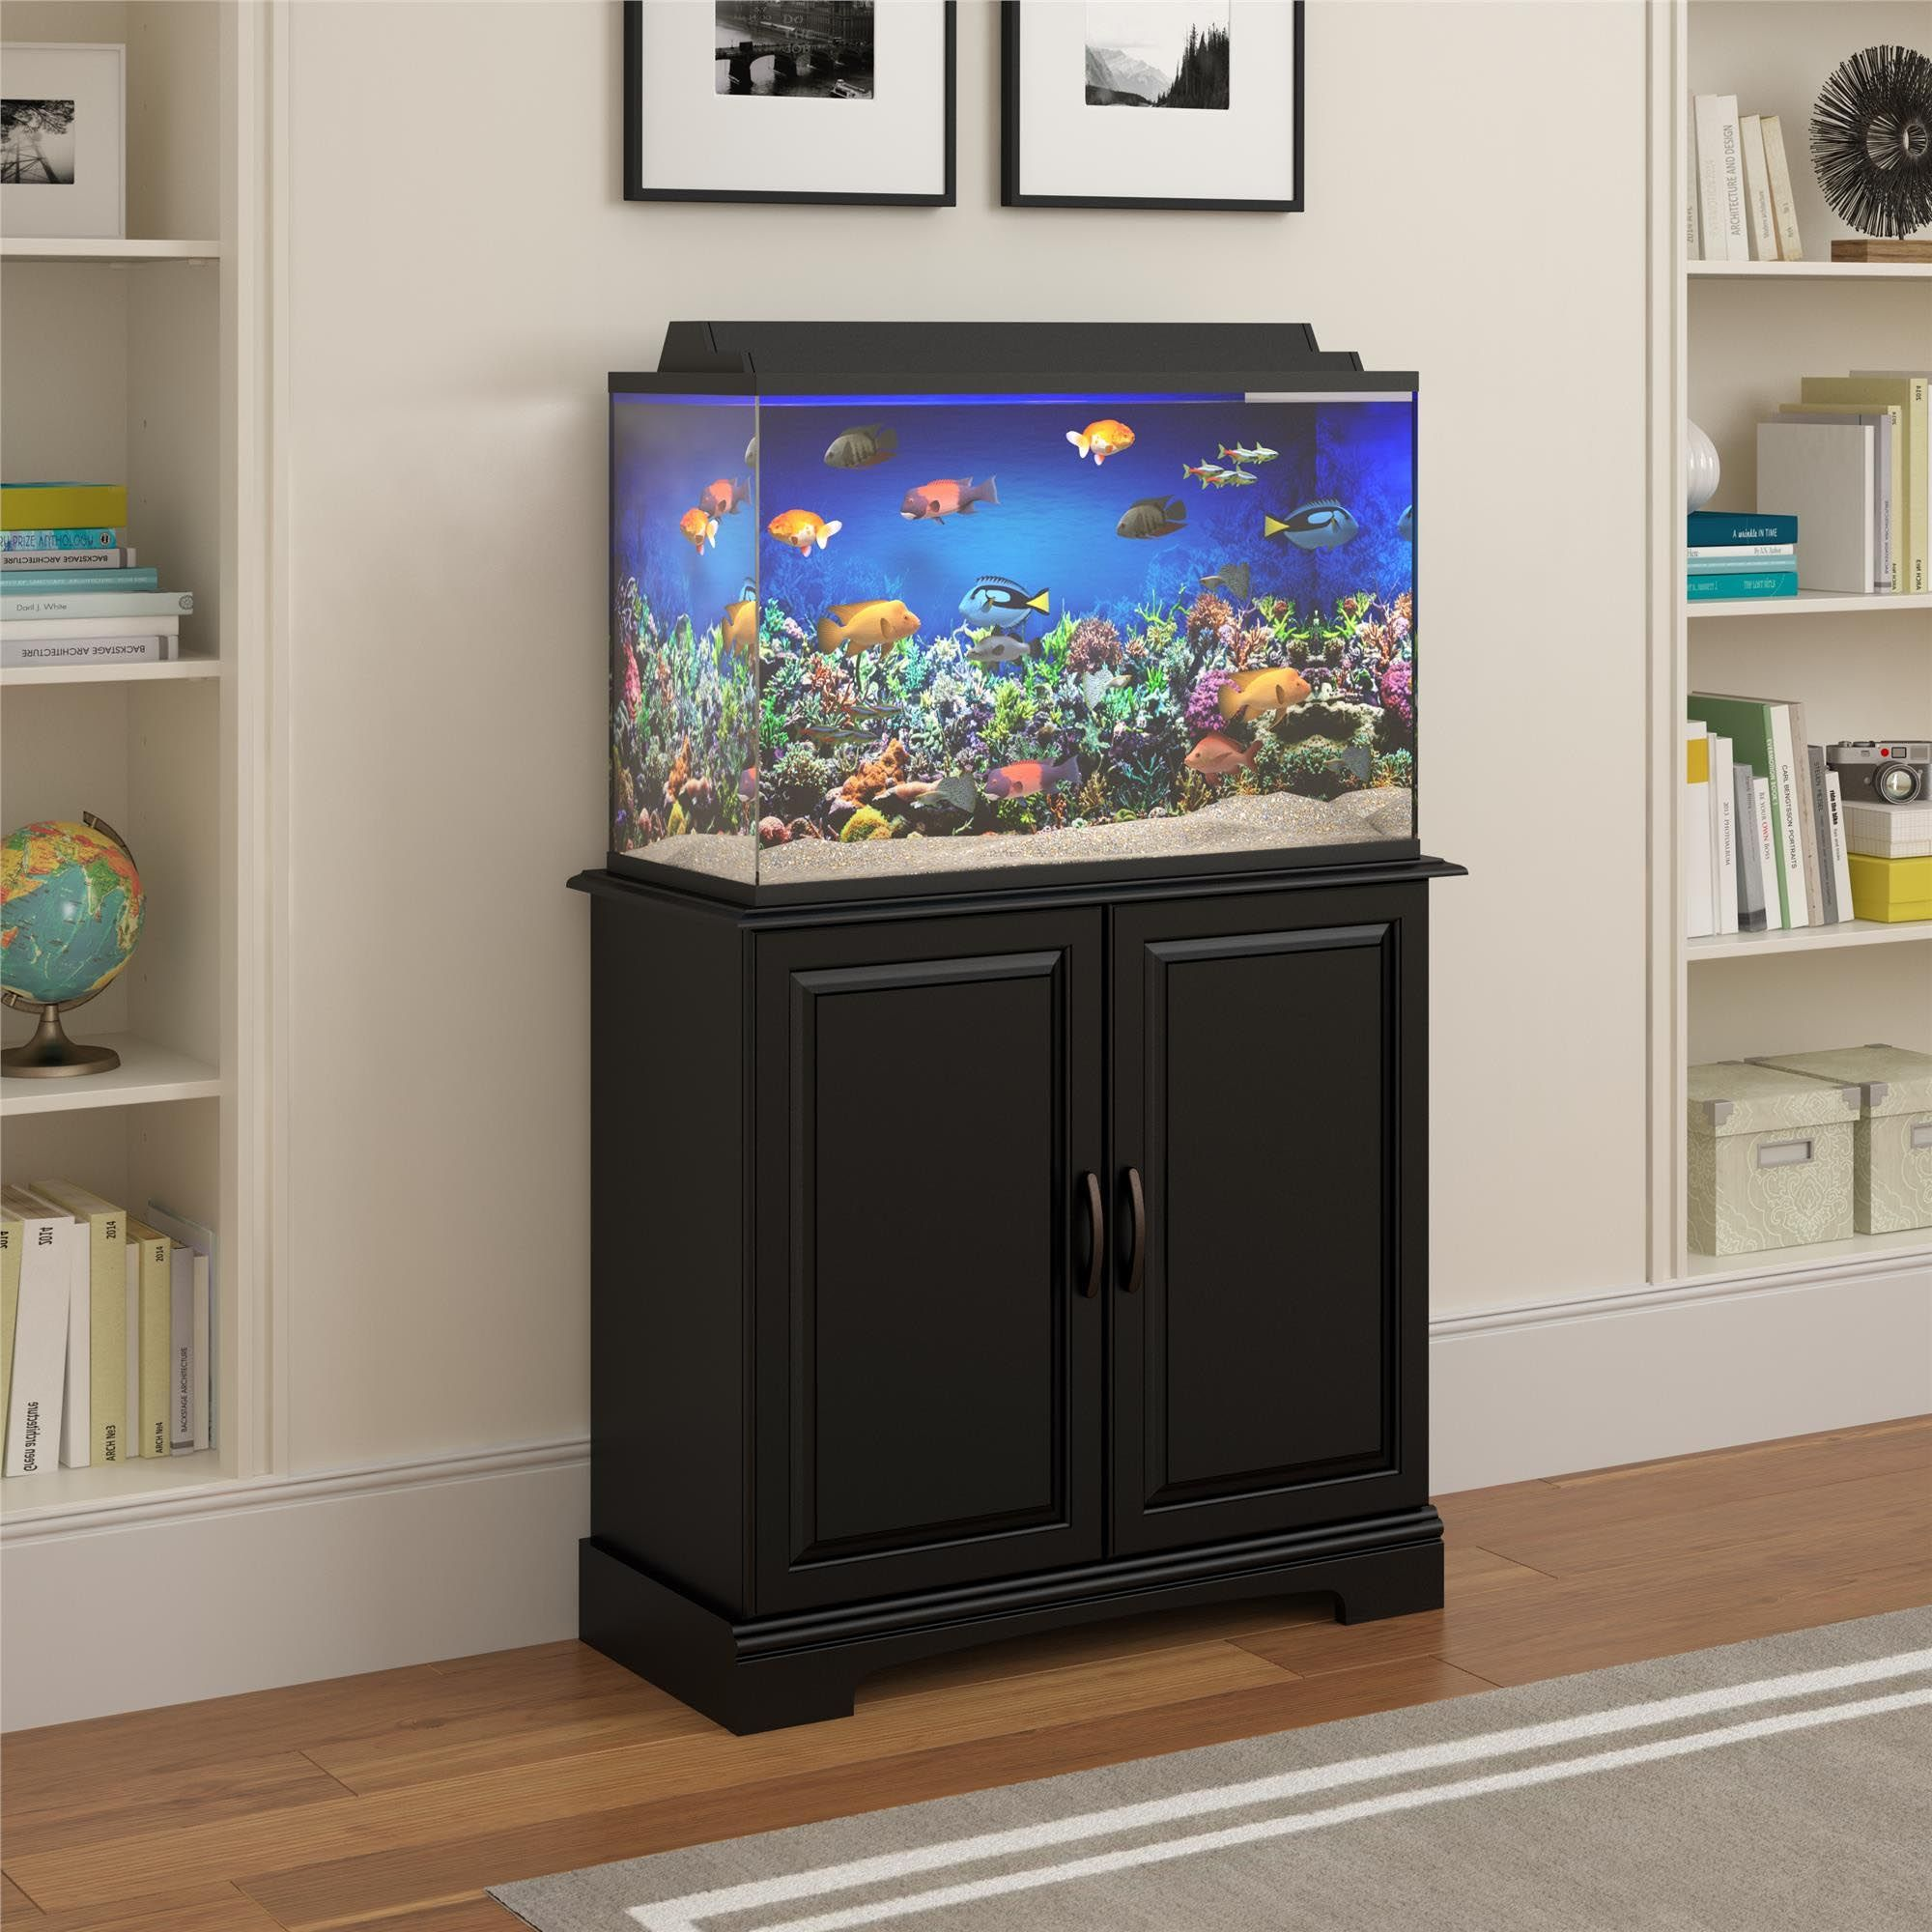 29 Gallon Fish Aquarium Stand Aquarium Stand Fish Tank Stand Aquarium Stands